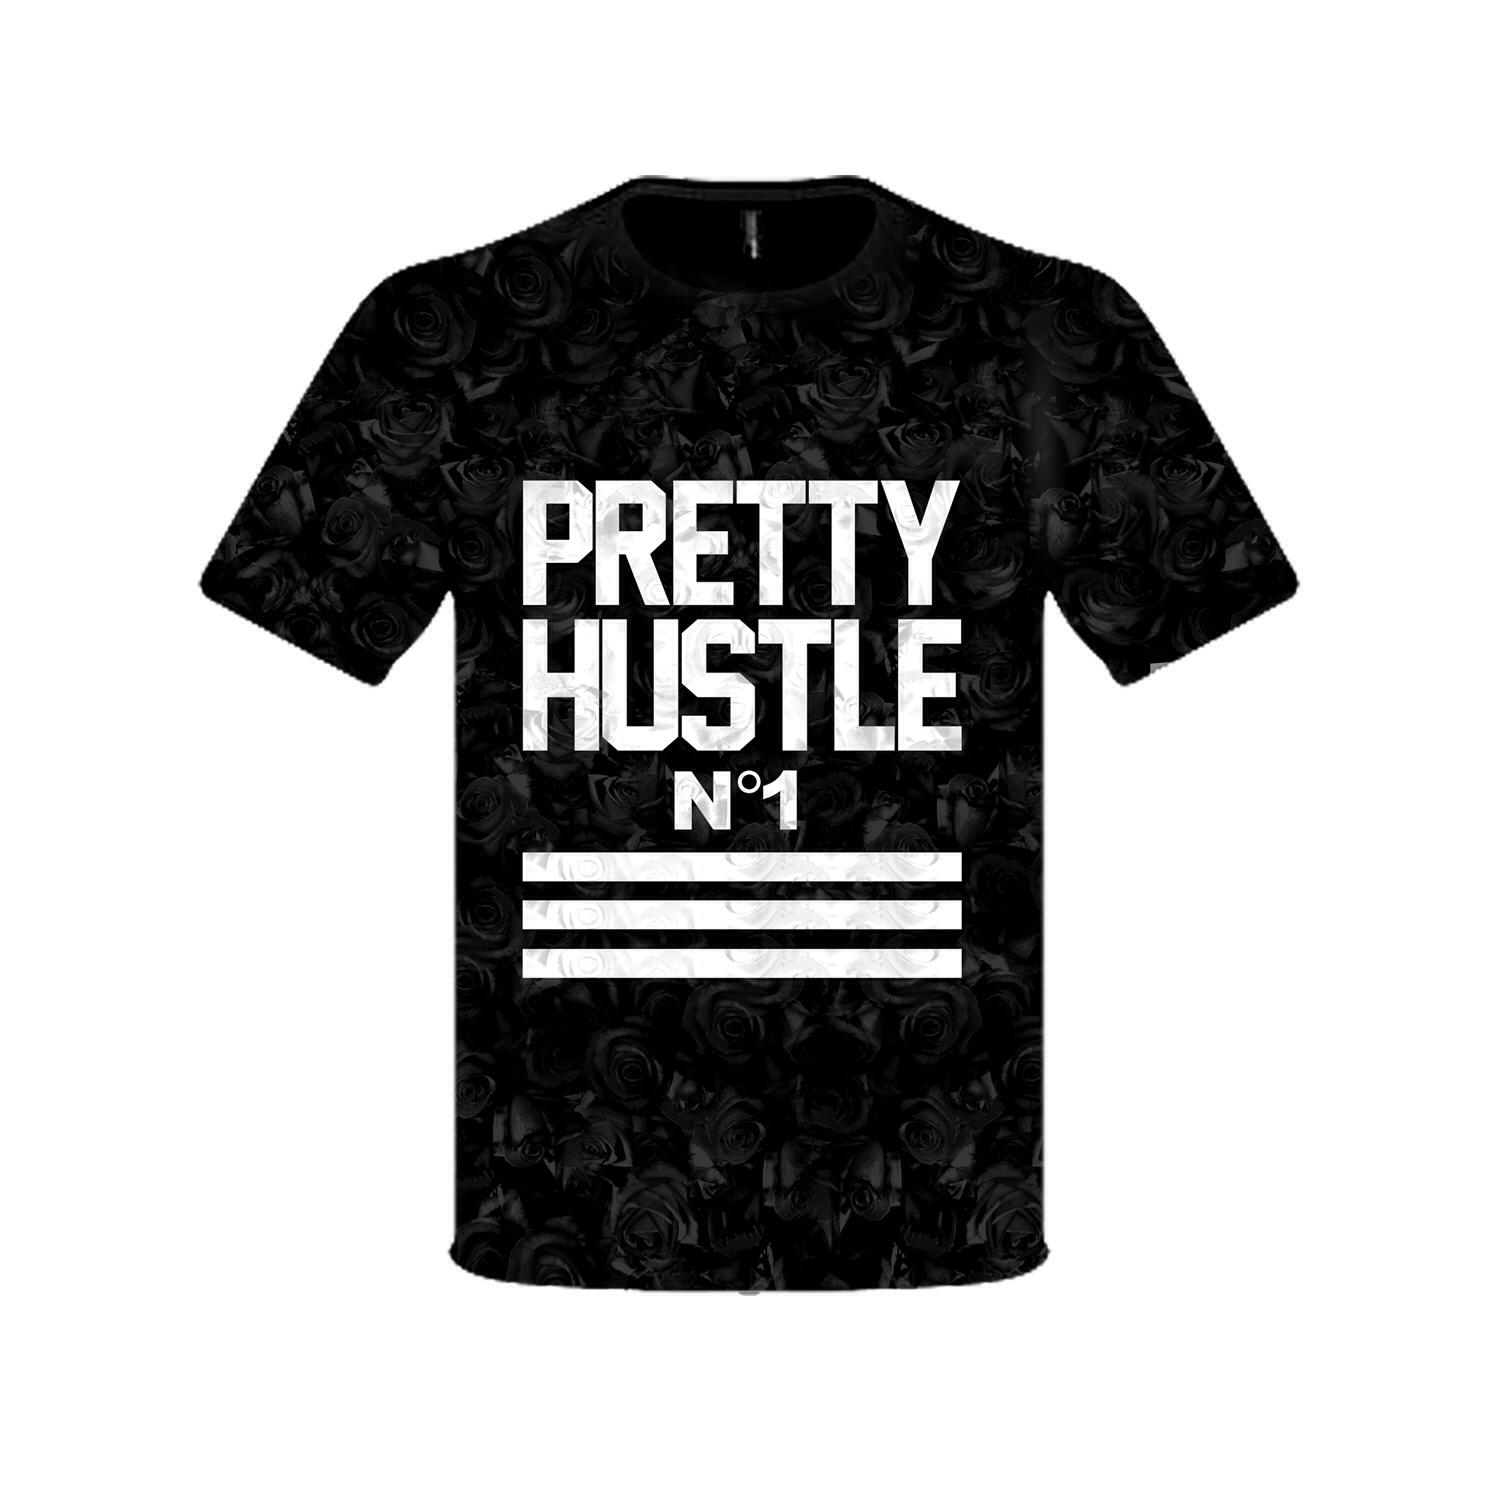 Clothing hustler line